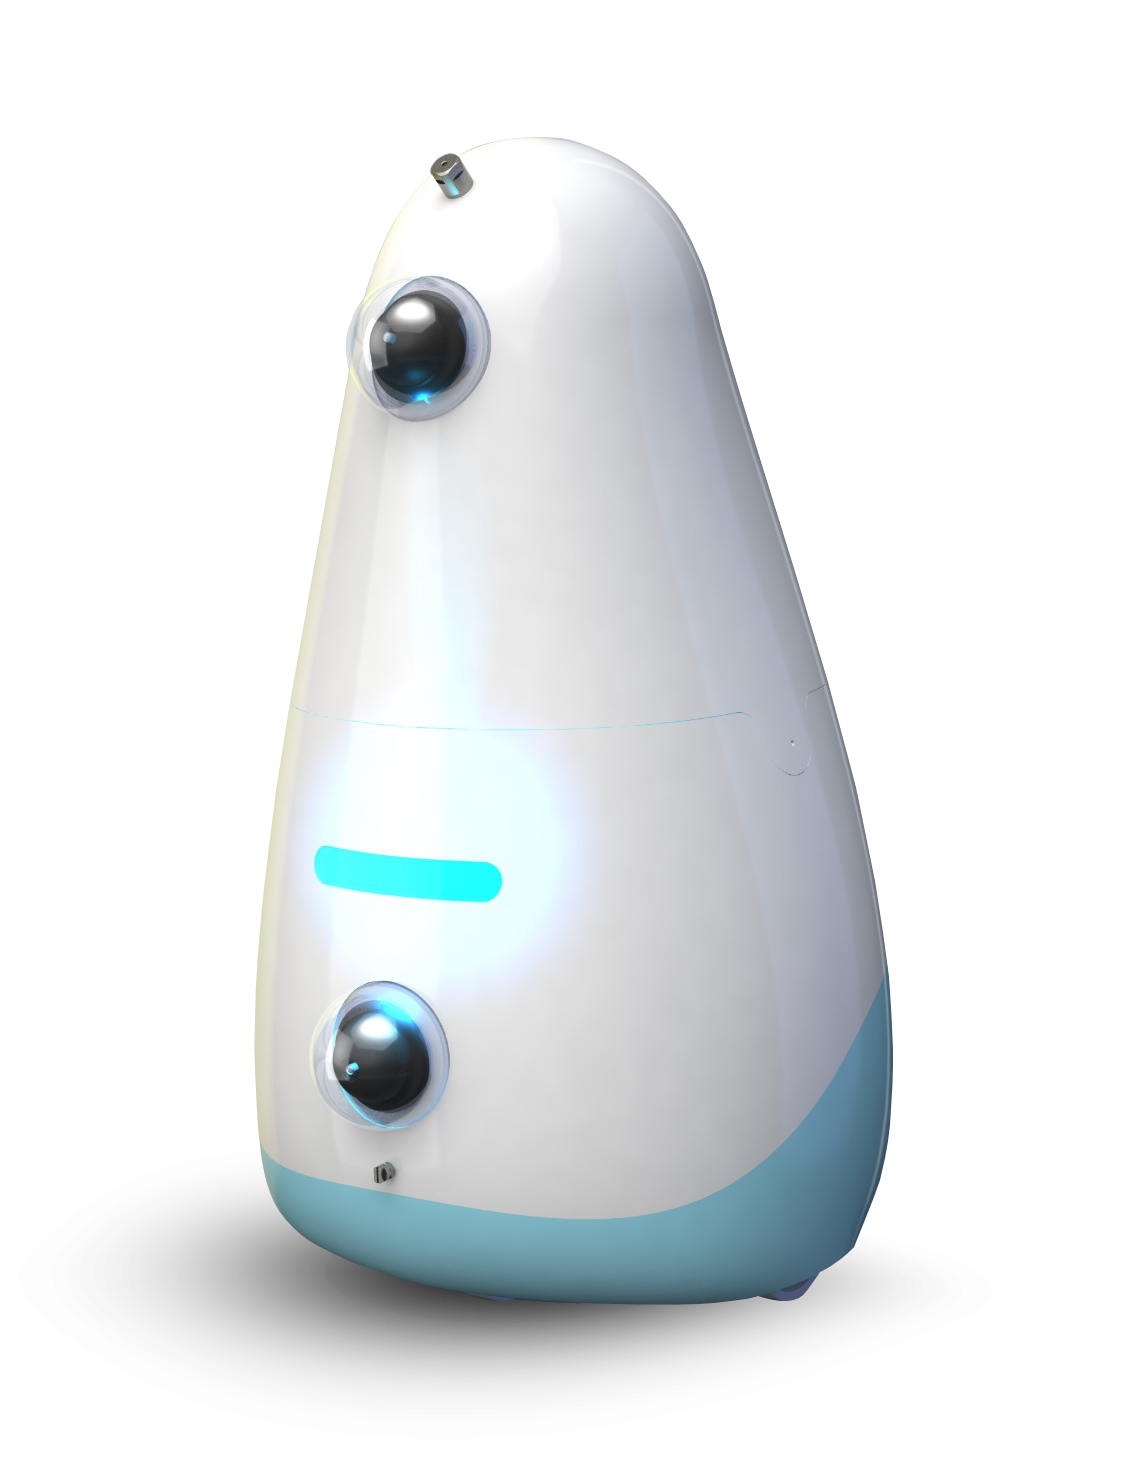 Solubots Self-cleansing Disinfectant Robot - SDR